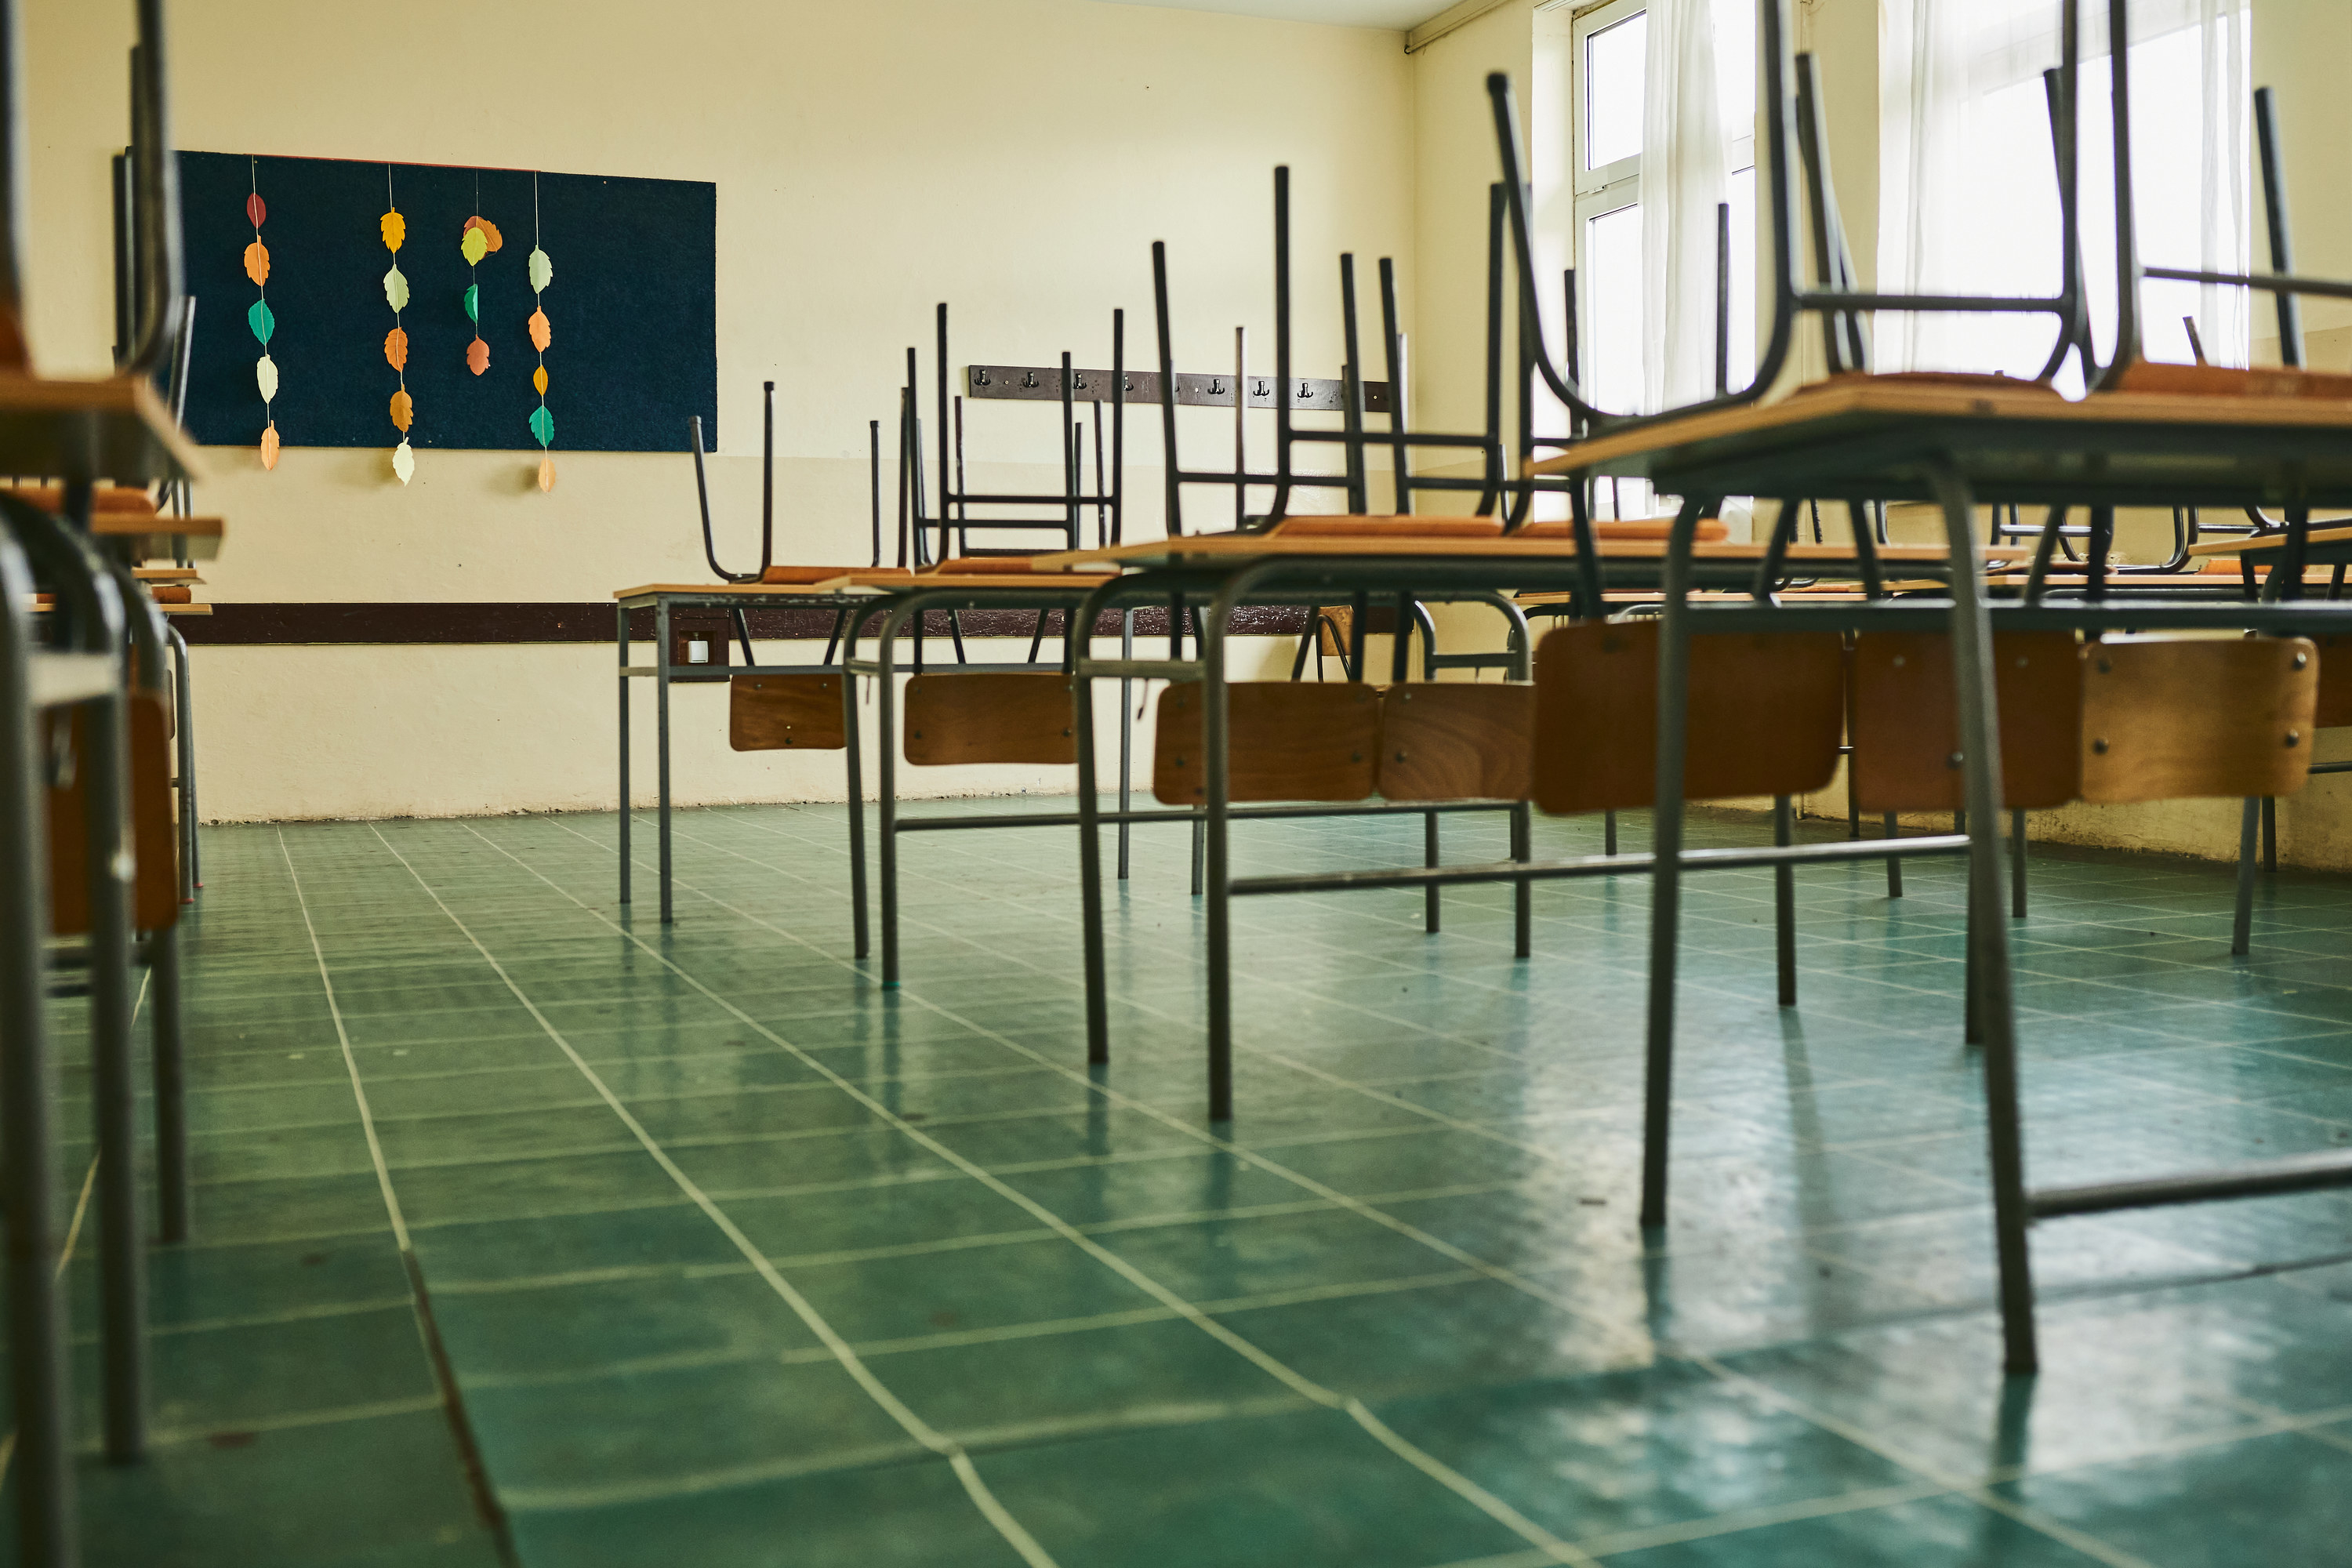 A classroom with the chairs up on the desks